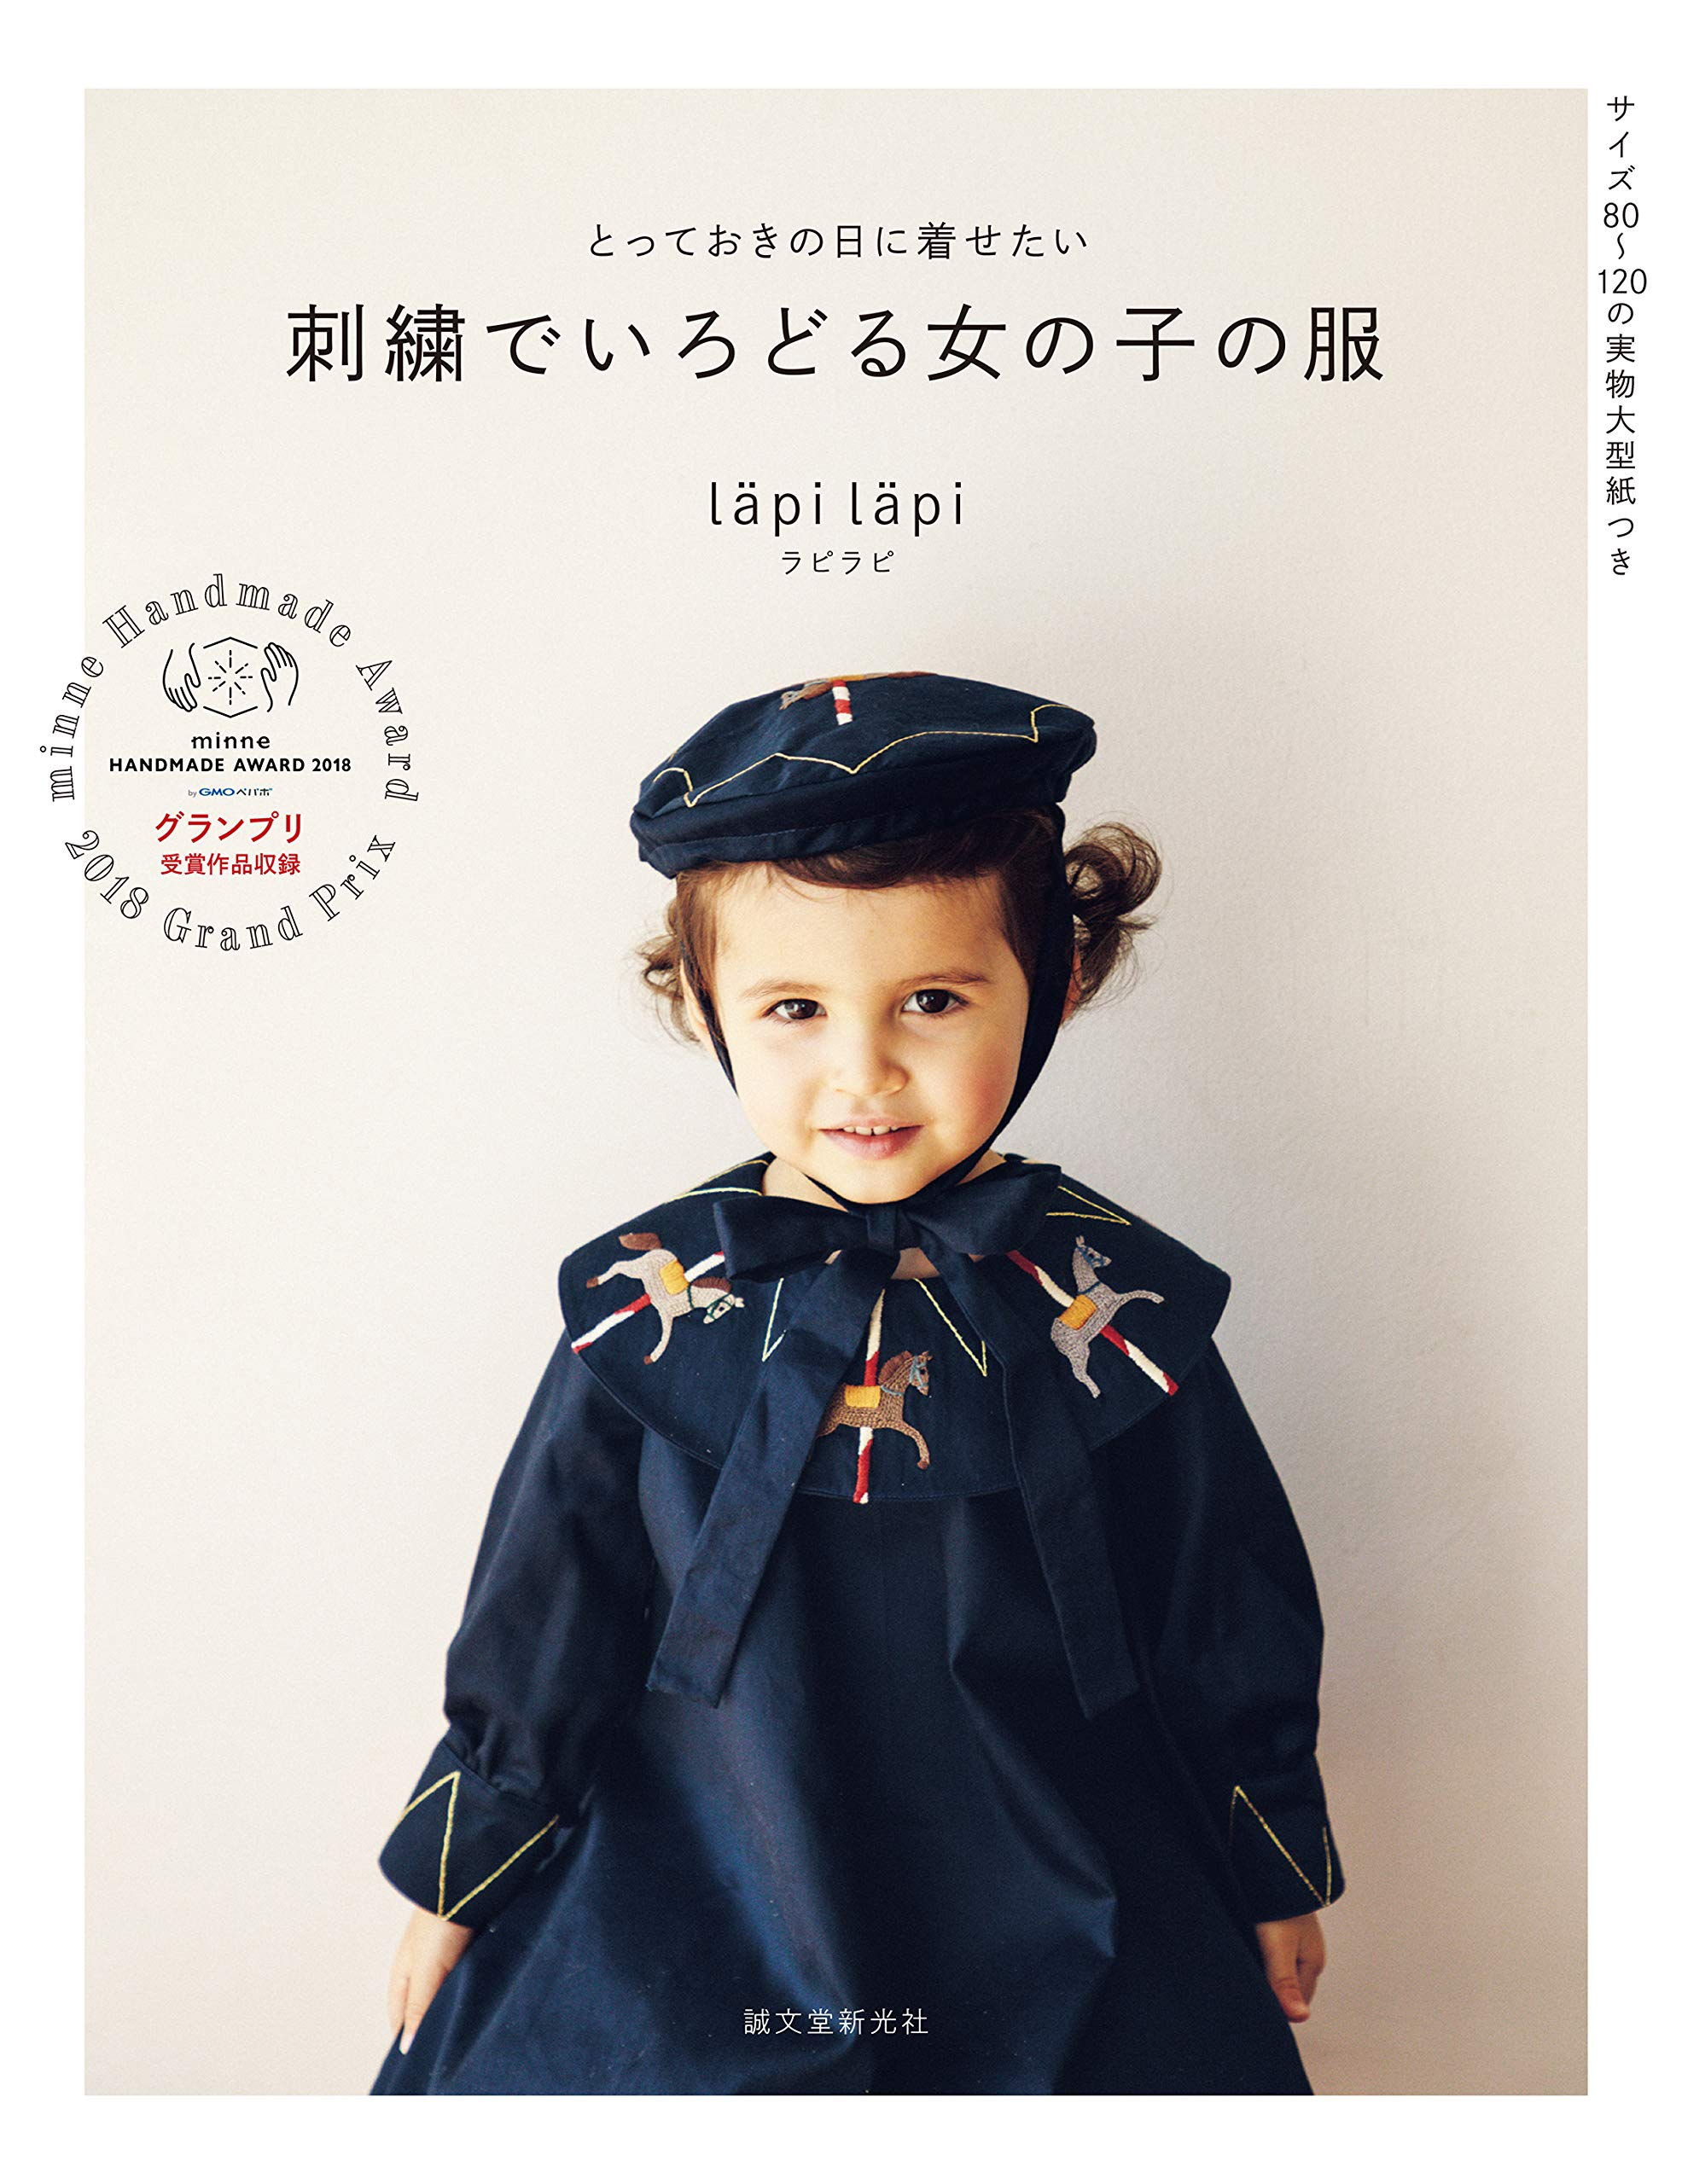 Embroidered Girls Clothes: Want to Wear a Special Day Japanese Large Book